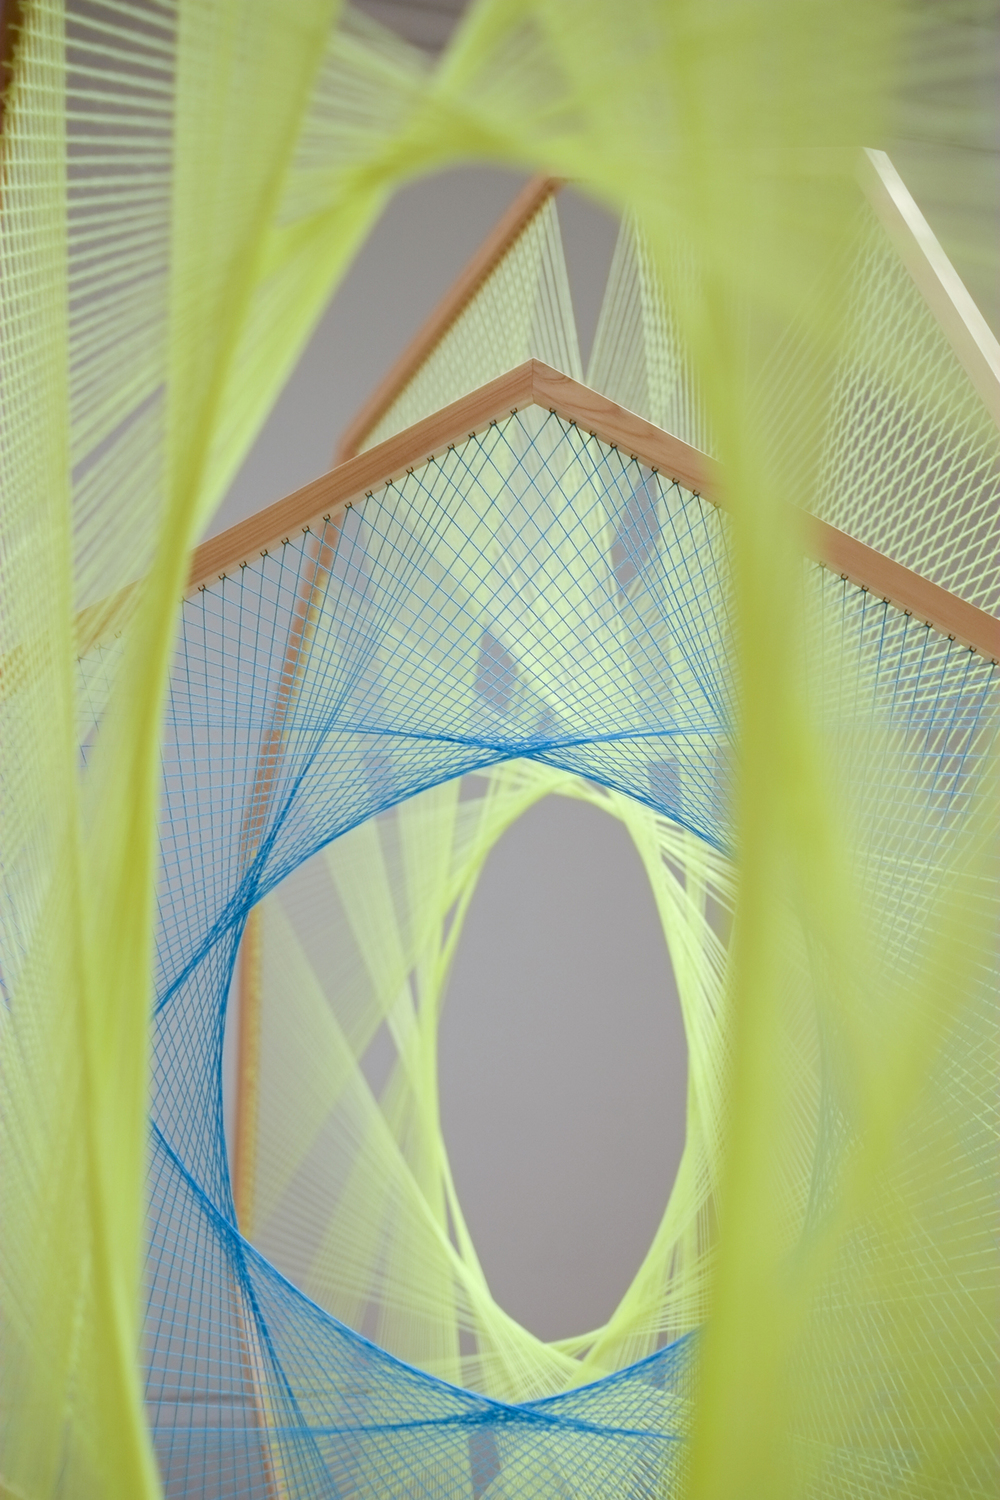 NIKE SAVVAS     Sliding Ladders: yellow with blue pentagon (detail)  2012 wool, wood, steel, image credit: Jonty Wilde 382 x 231.5 cm